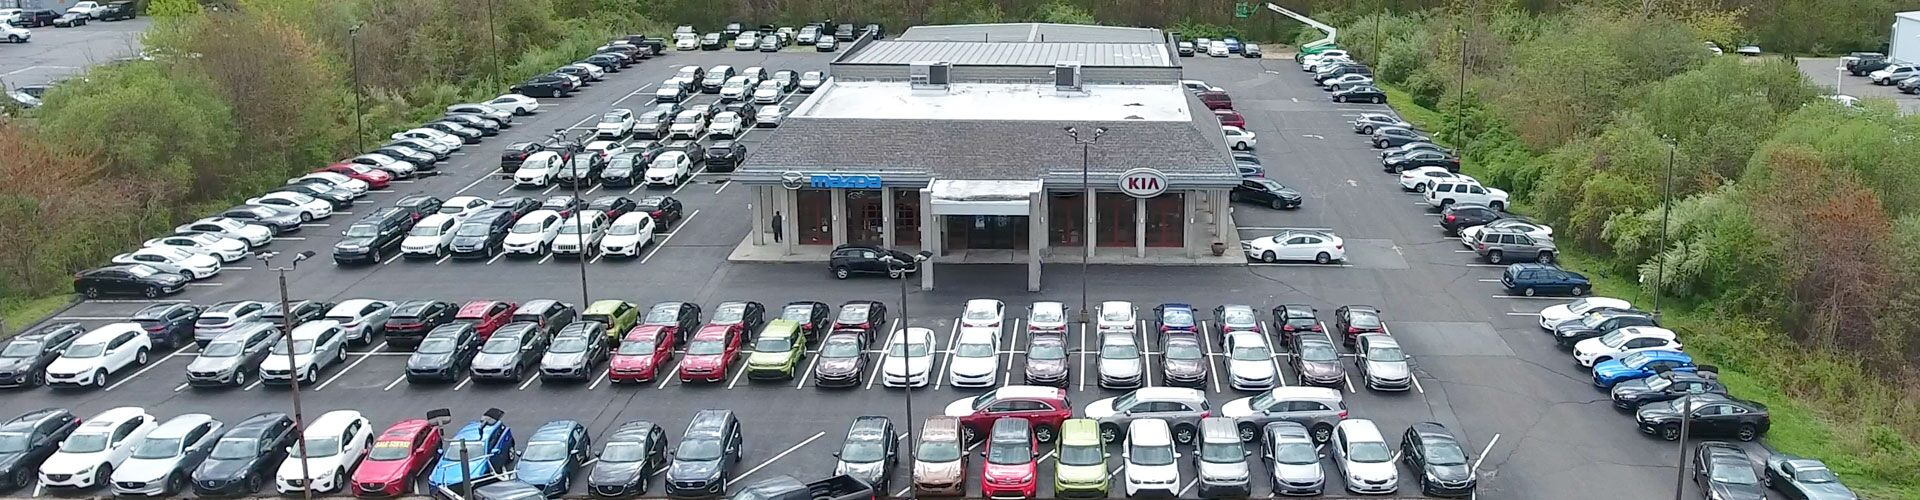 ct in htm premier dealership sorento showroom suv featured vehicles connecticut branford dealers new of lx kia